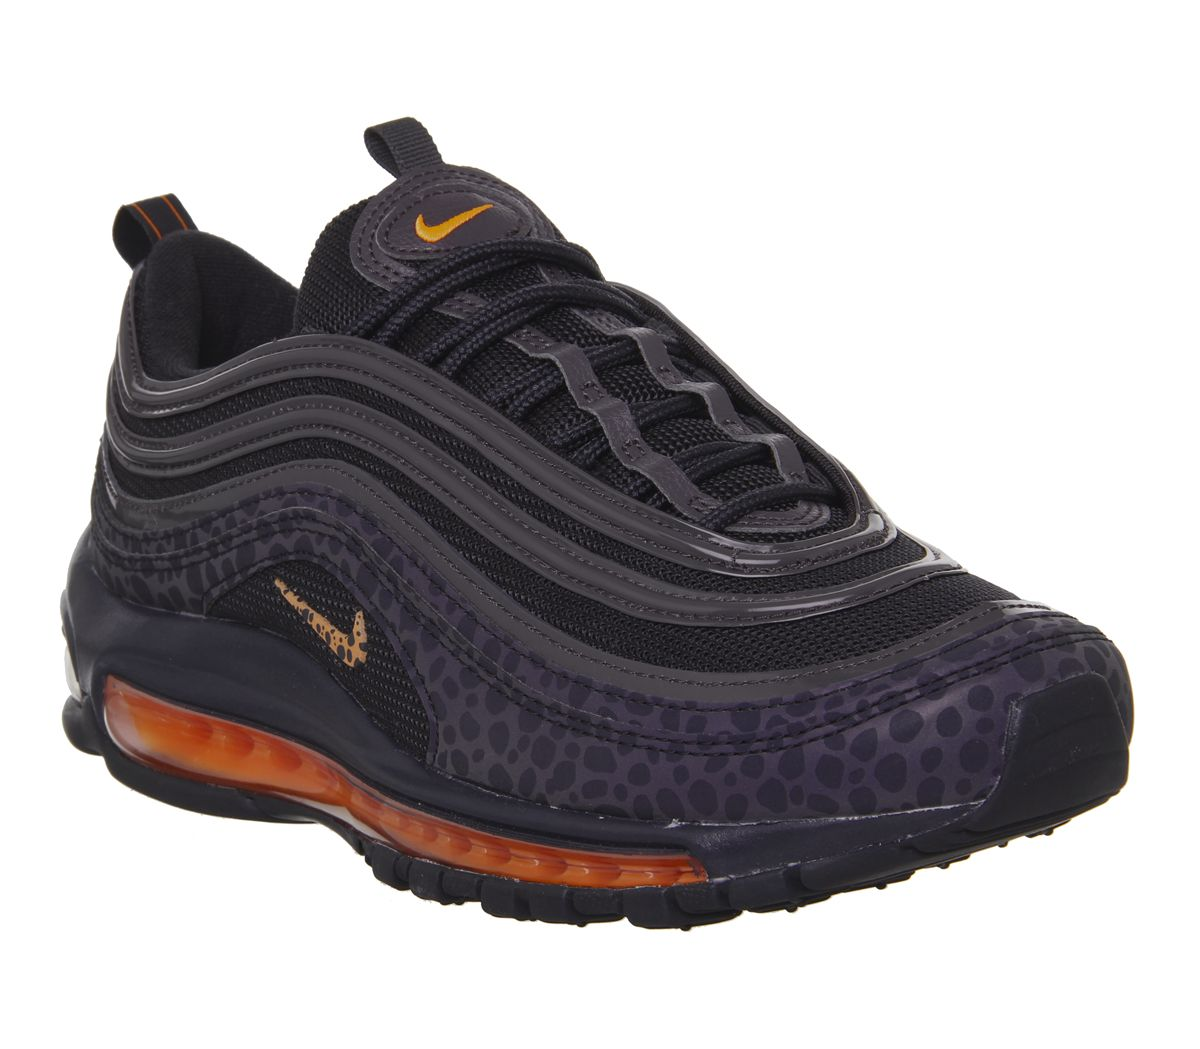 huge discount 16f7a 1f043 Nike Air Max 97 Trainers Black Orange Trance Thunder Grey Stargazer ...